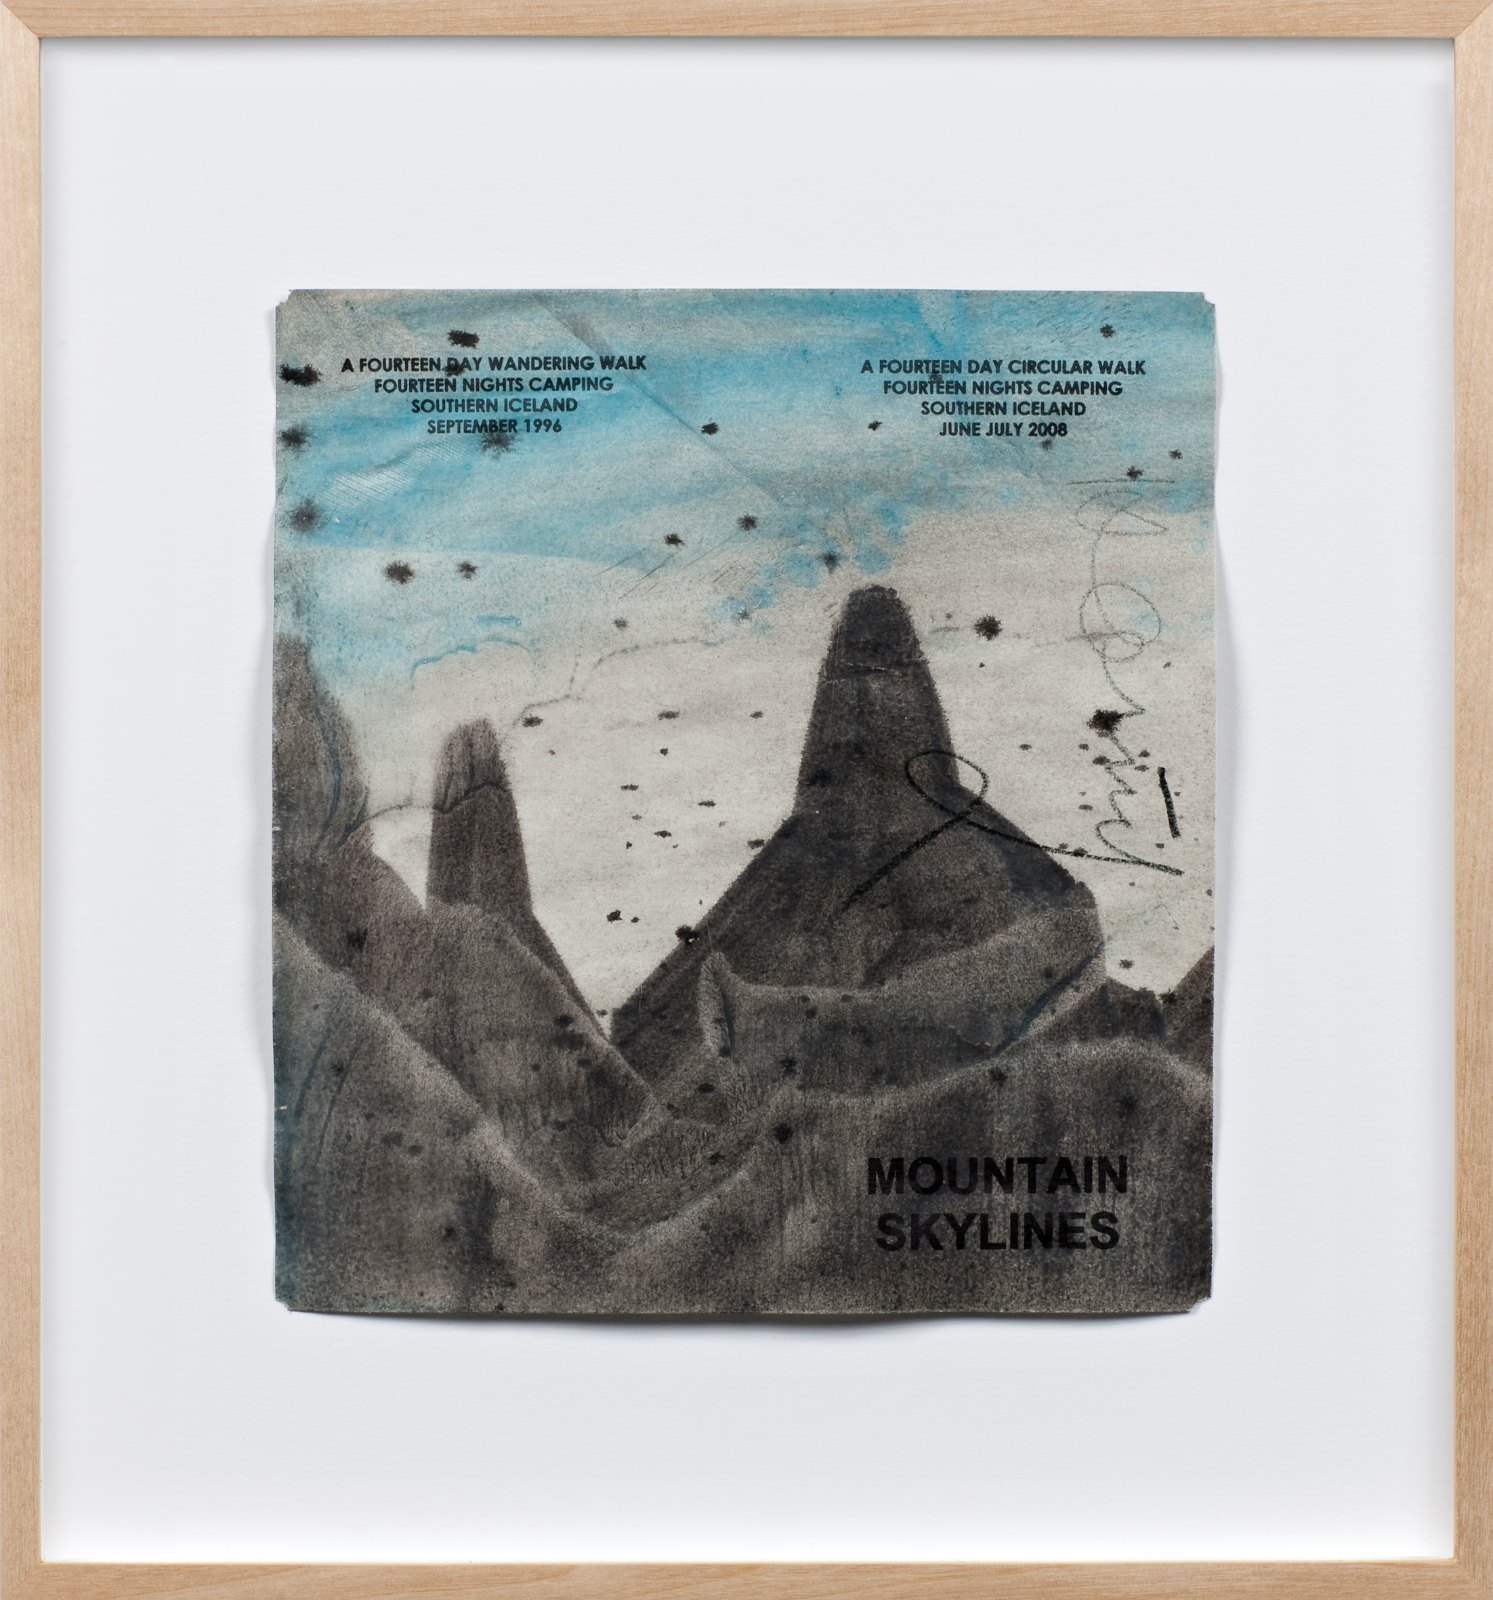 Mountain Skylines, Iceland 1996, 2008, acrylic paint on paper with ink stamps, 20,5 x 18,5 cm